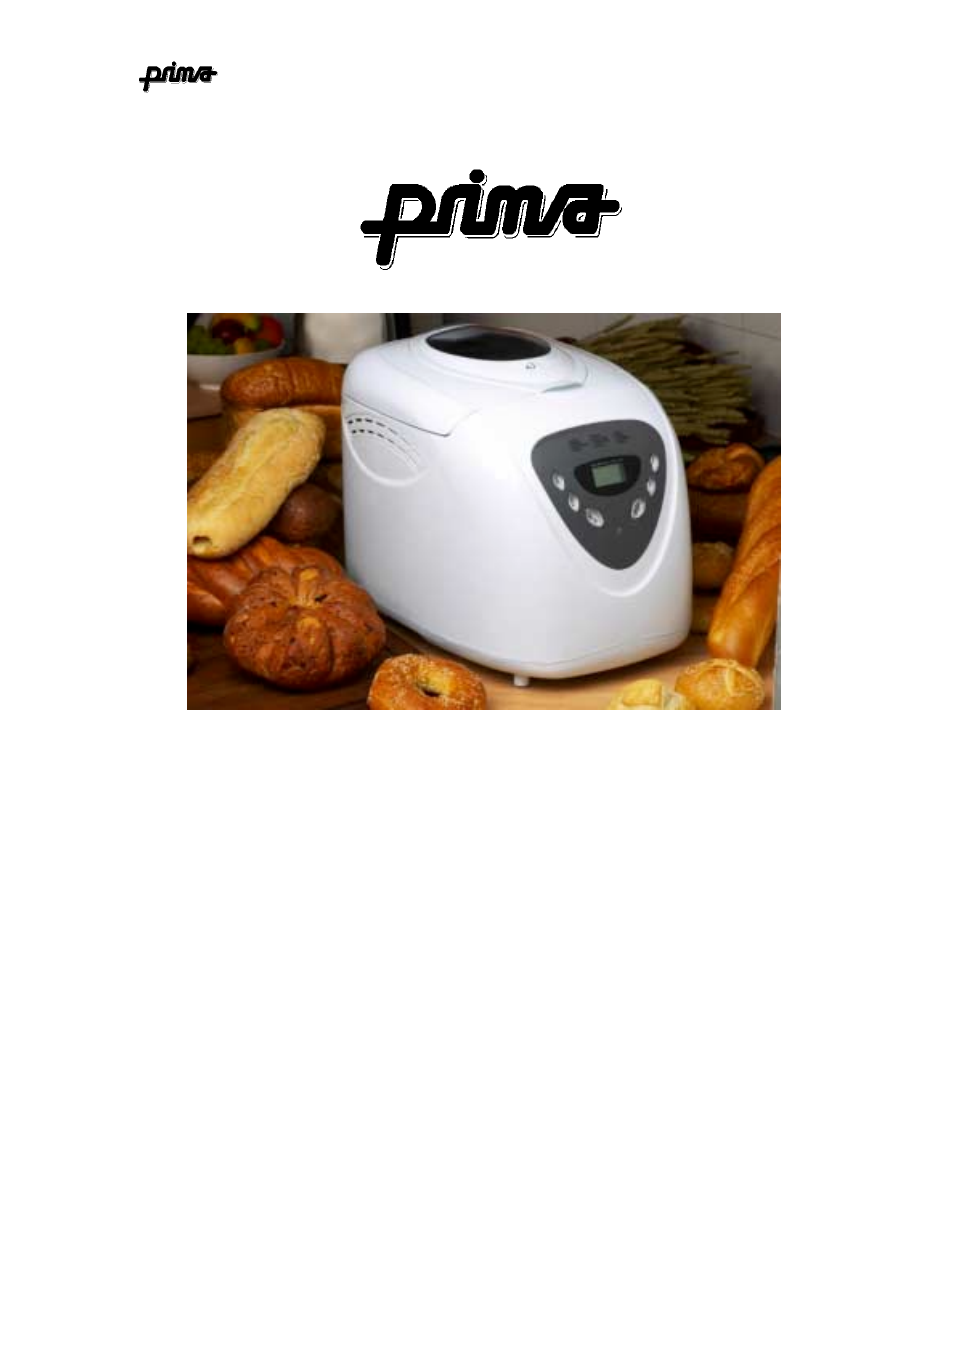 prima abm10 user manual 43 pages rh manualsdir com Malibu Low Voltage Transformer Manual User Manual Guide